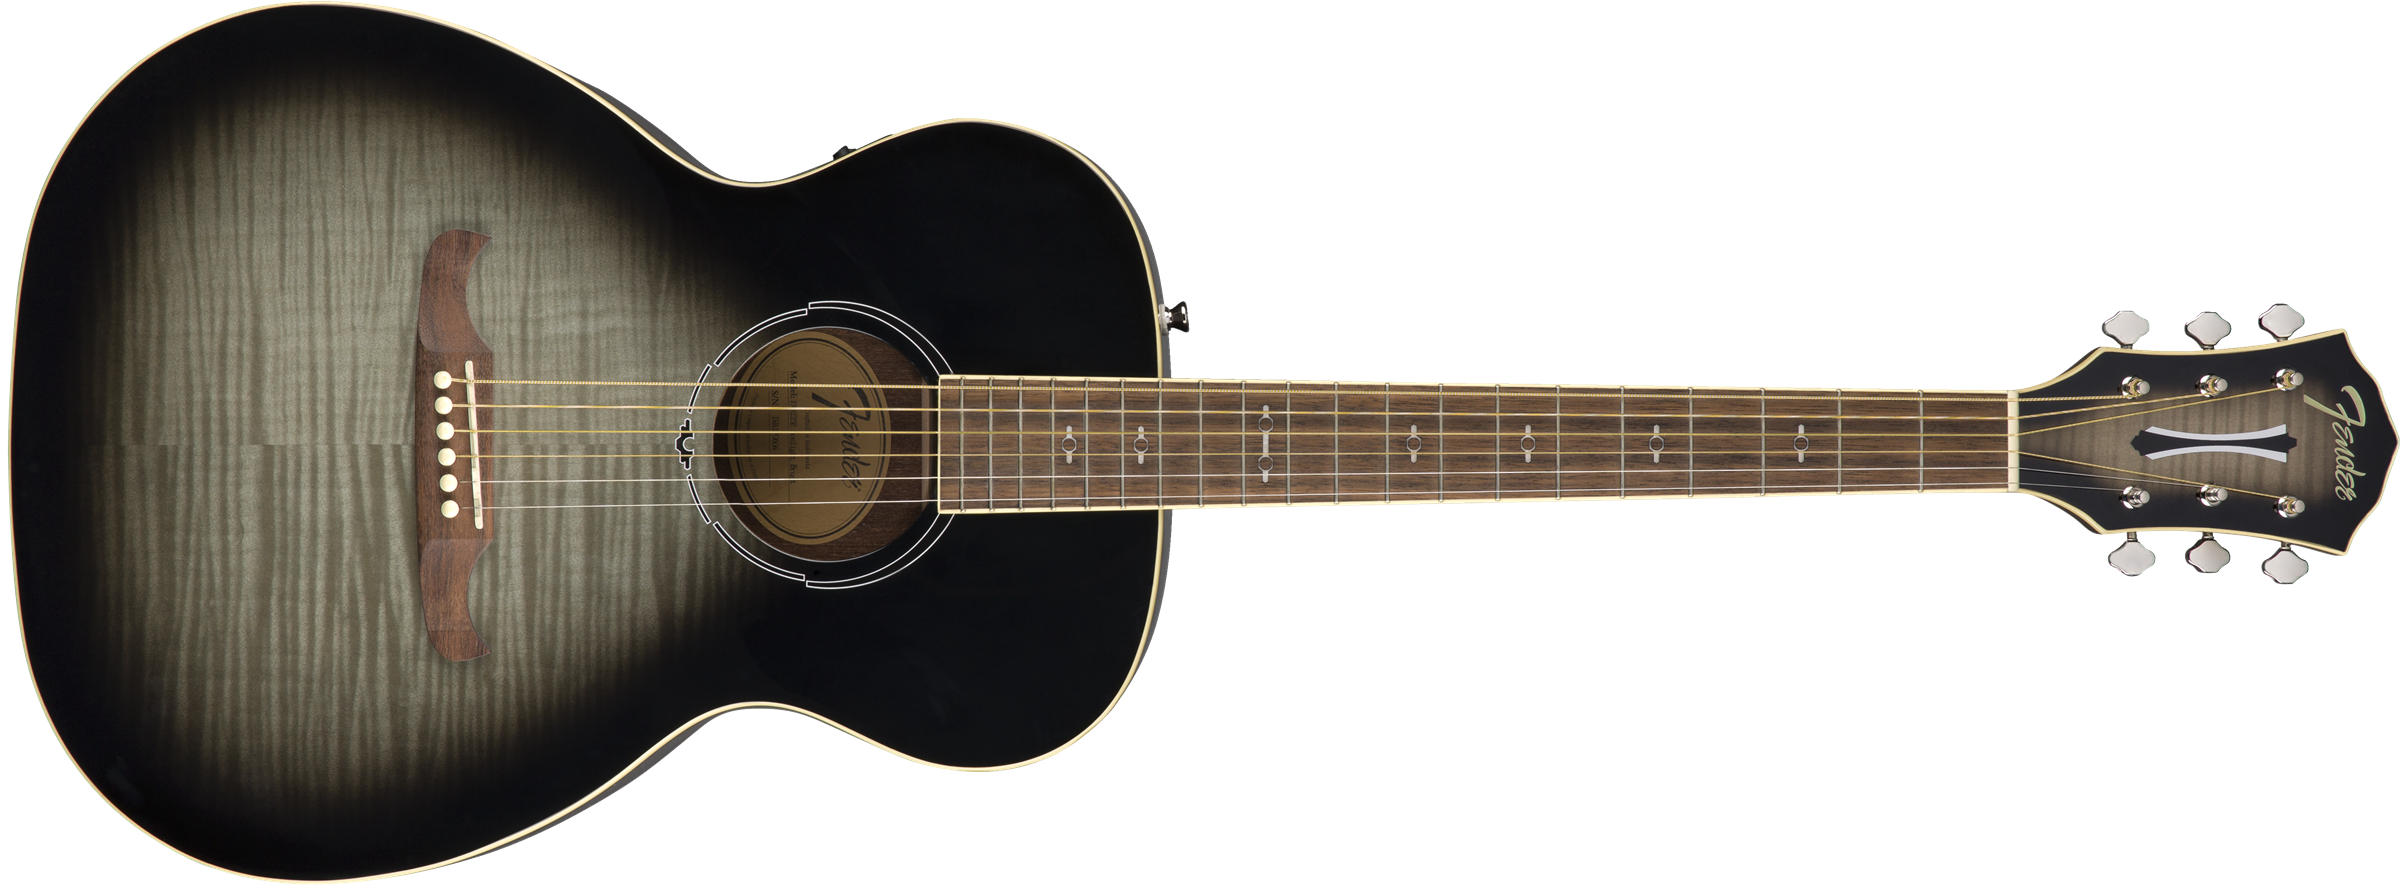 This is an image of the Fender FA-235E Concert, Rosewood Fingerboard, Moonlight Burst